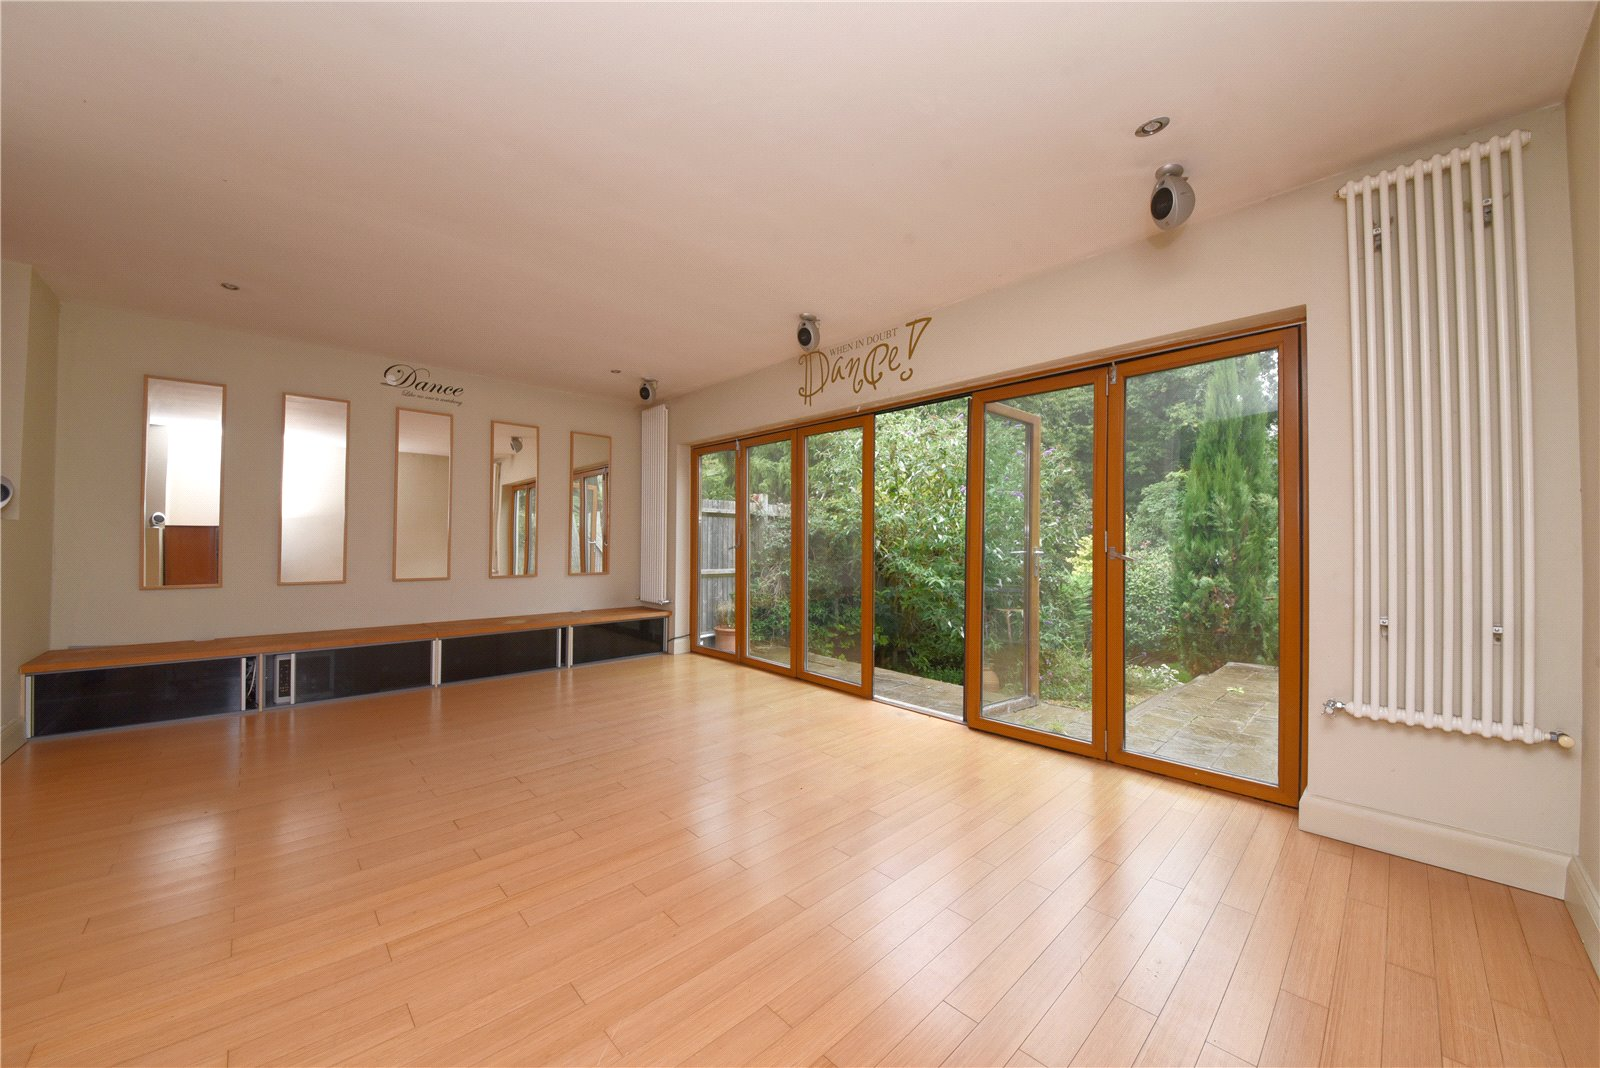 4 bed house to rent in Longland Drive, Totteridge 3